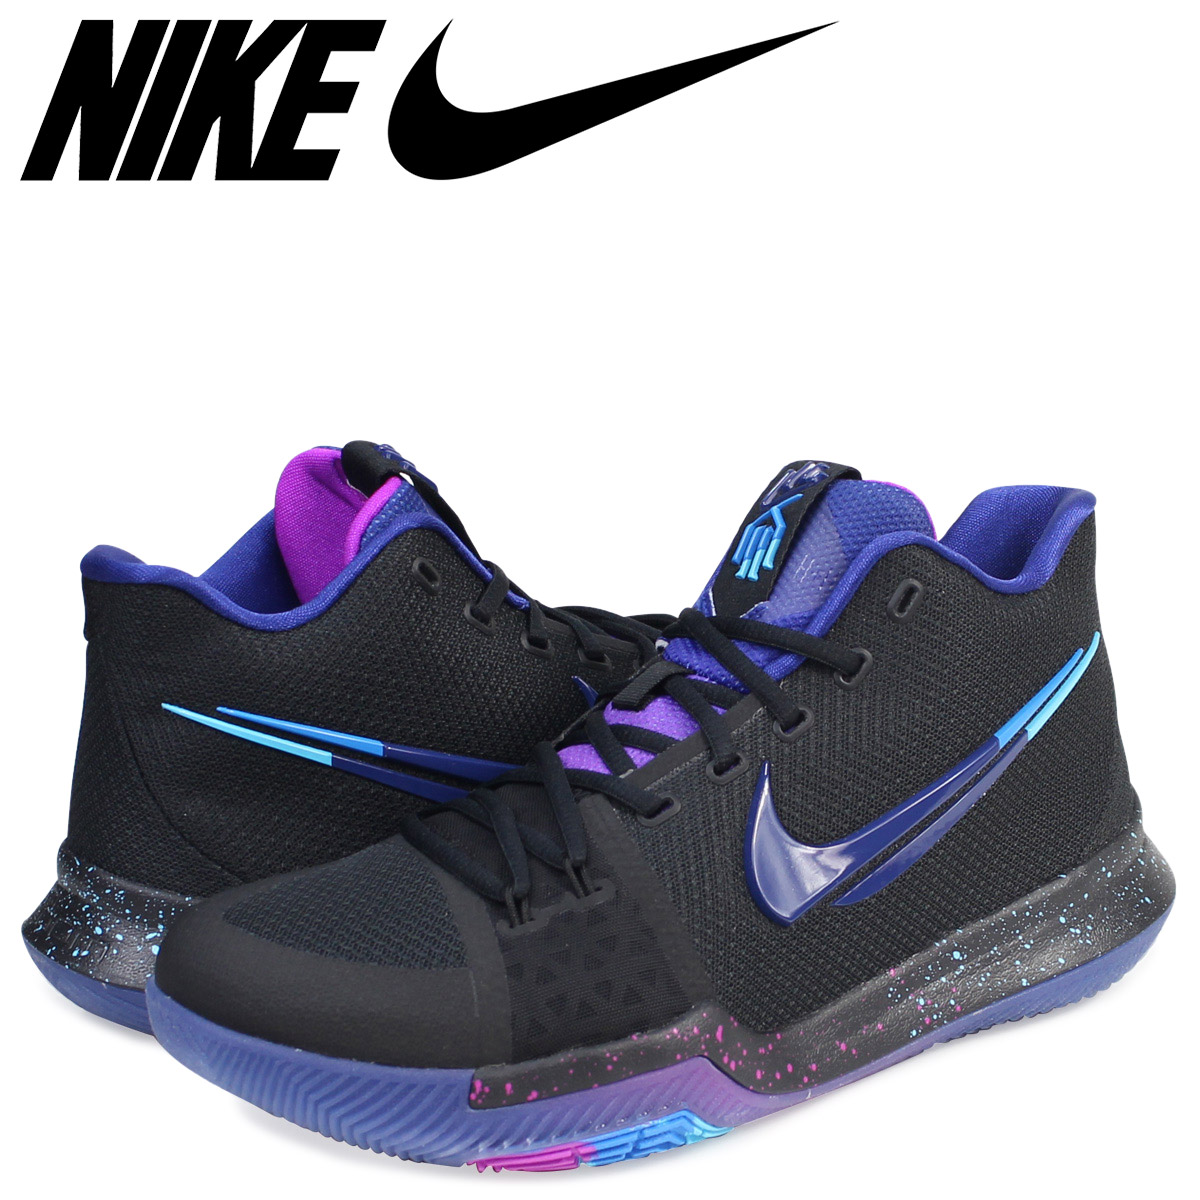 e5afc9b9d1a4 Whats up Sports  Nike NIKE chi Lee 3 sneakers KYRIE 3 FLIP THE ...